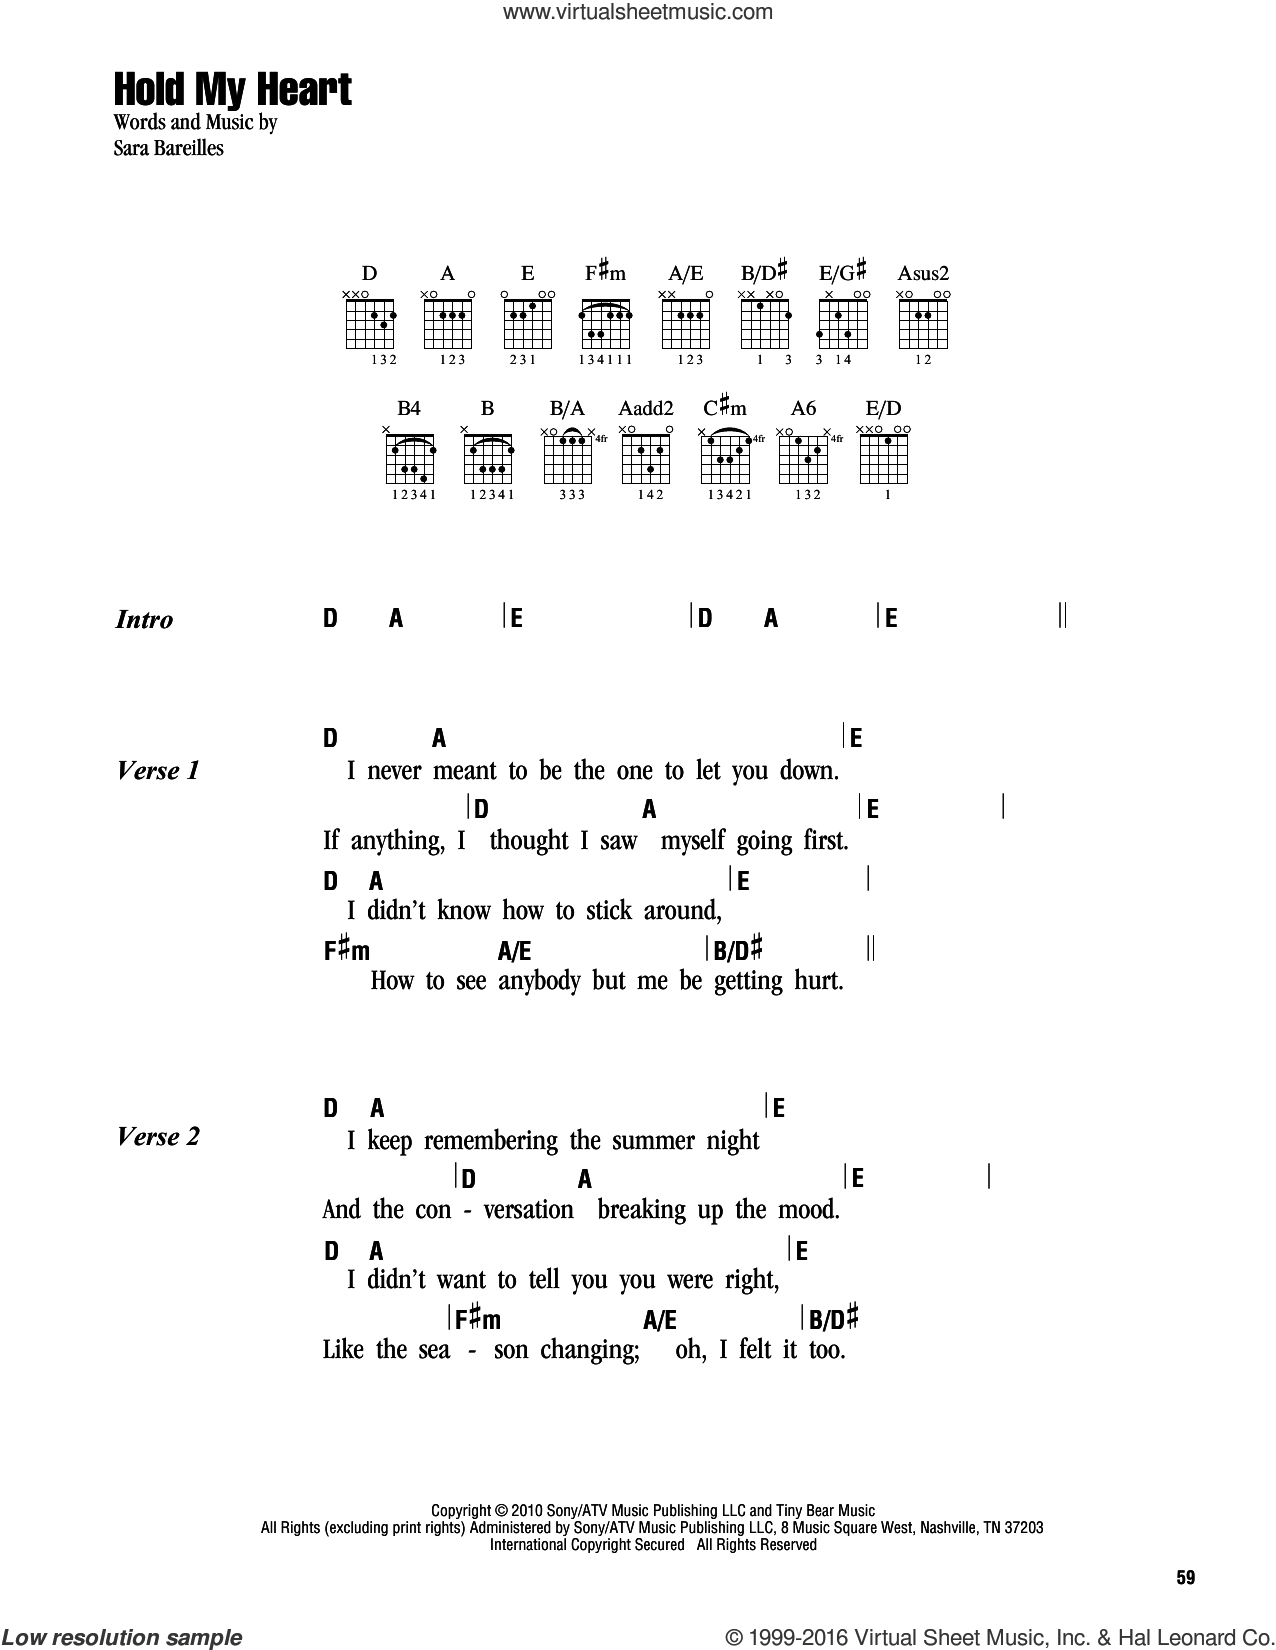 Hold My Heart sheet music for guitar (chords) by Sara Bareilles. Score Image Preview.